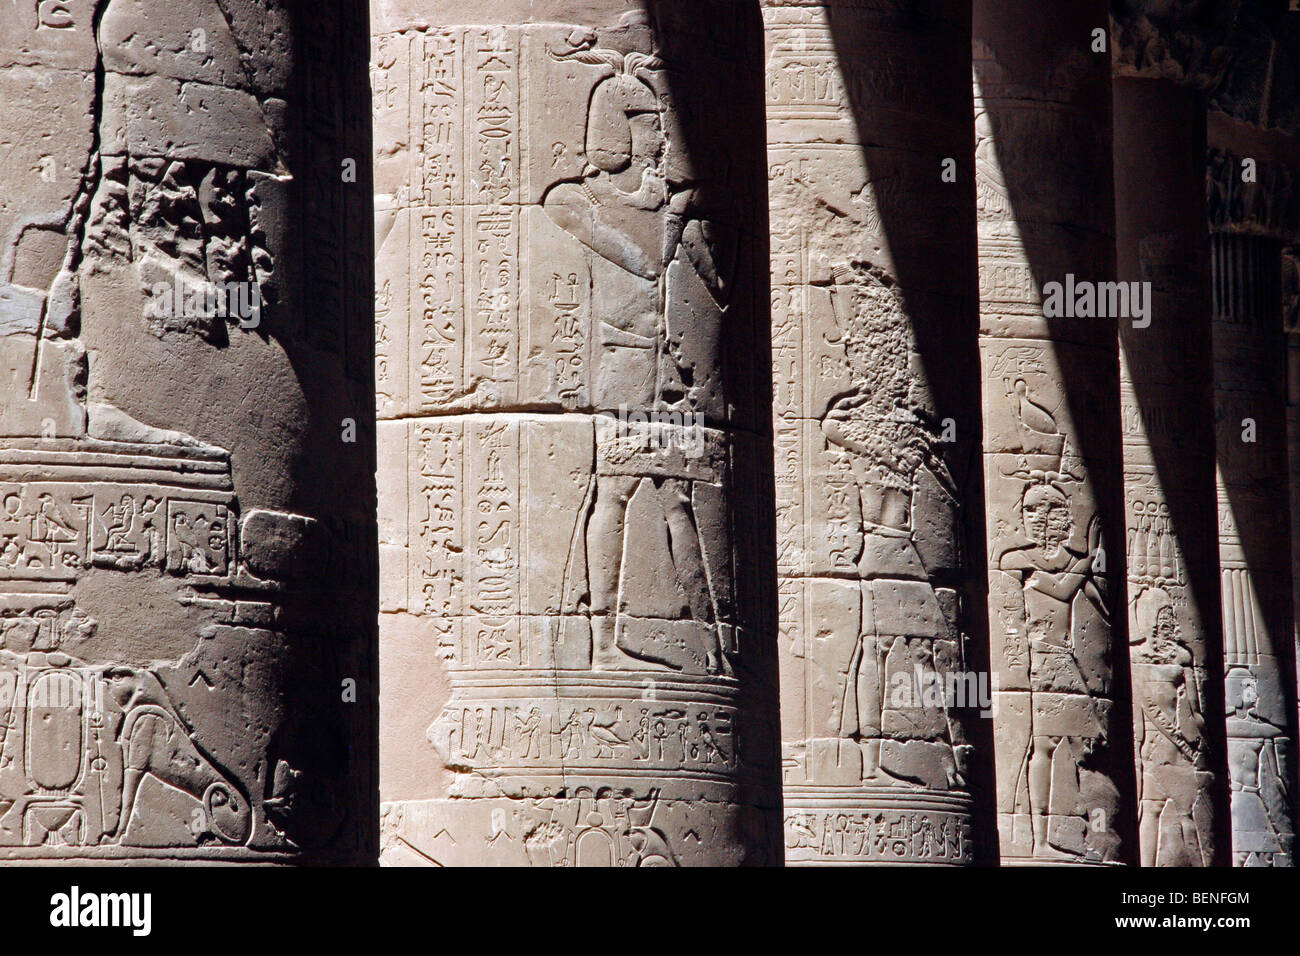 Egyptian hieroglyphs on pillars in the Temple of Edfu, ancient Egyptian Horus temple on the west bank of the Nile, - Stock Image